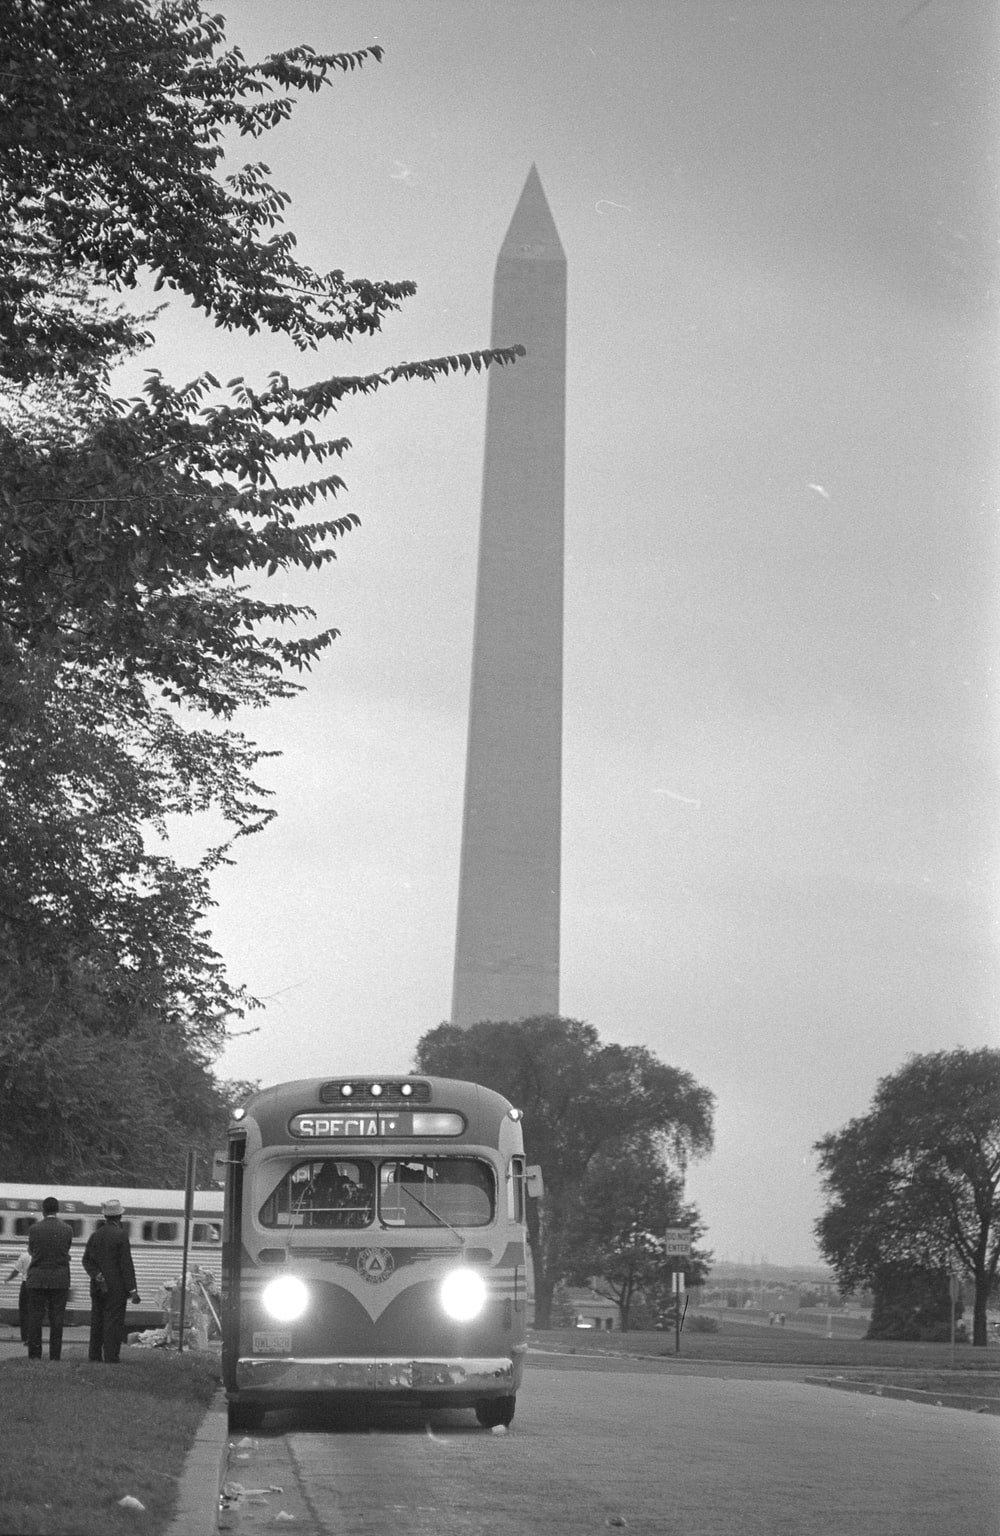 Bus leaving near the Washington Monument, after the March on Washington